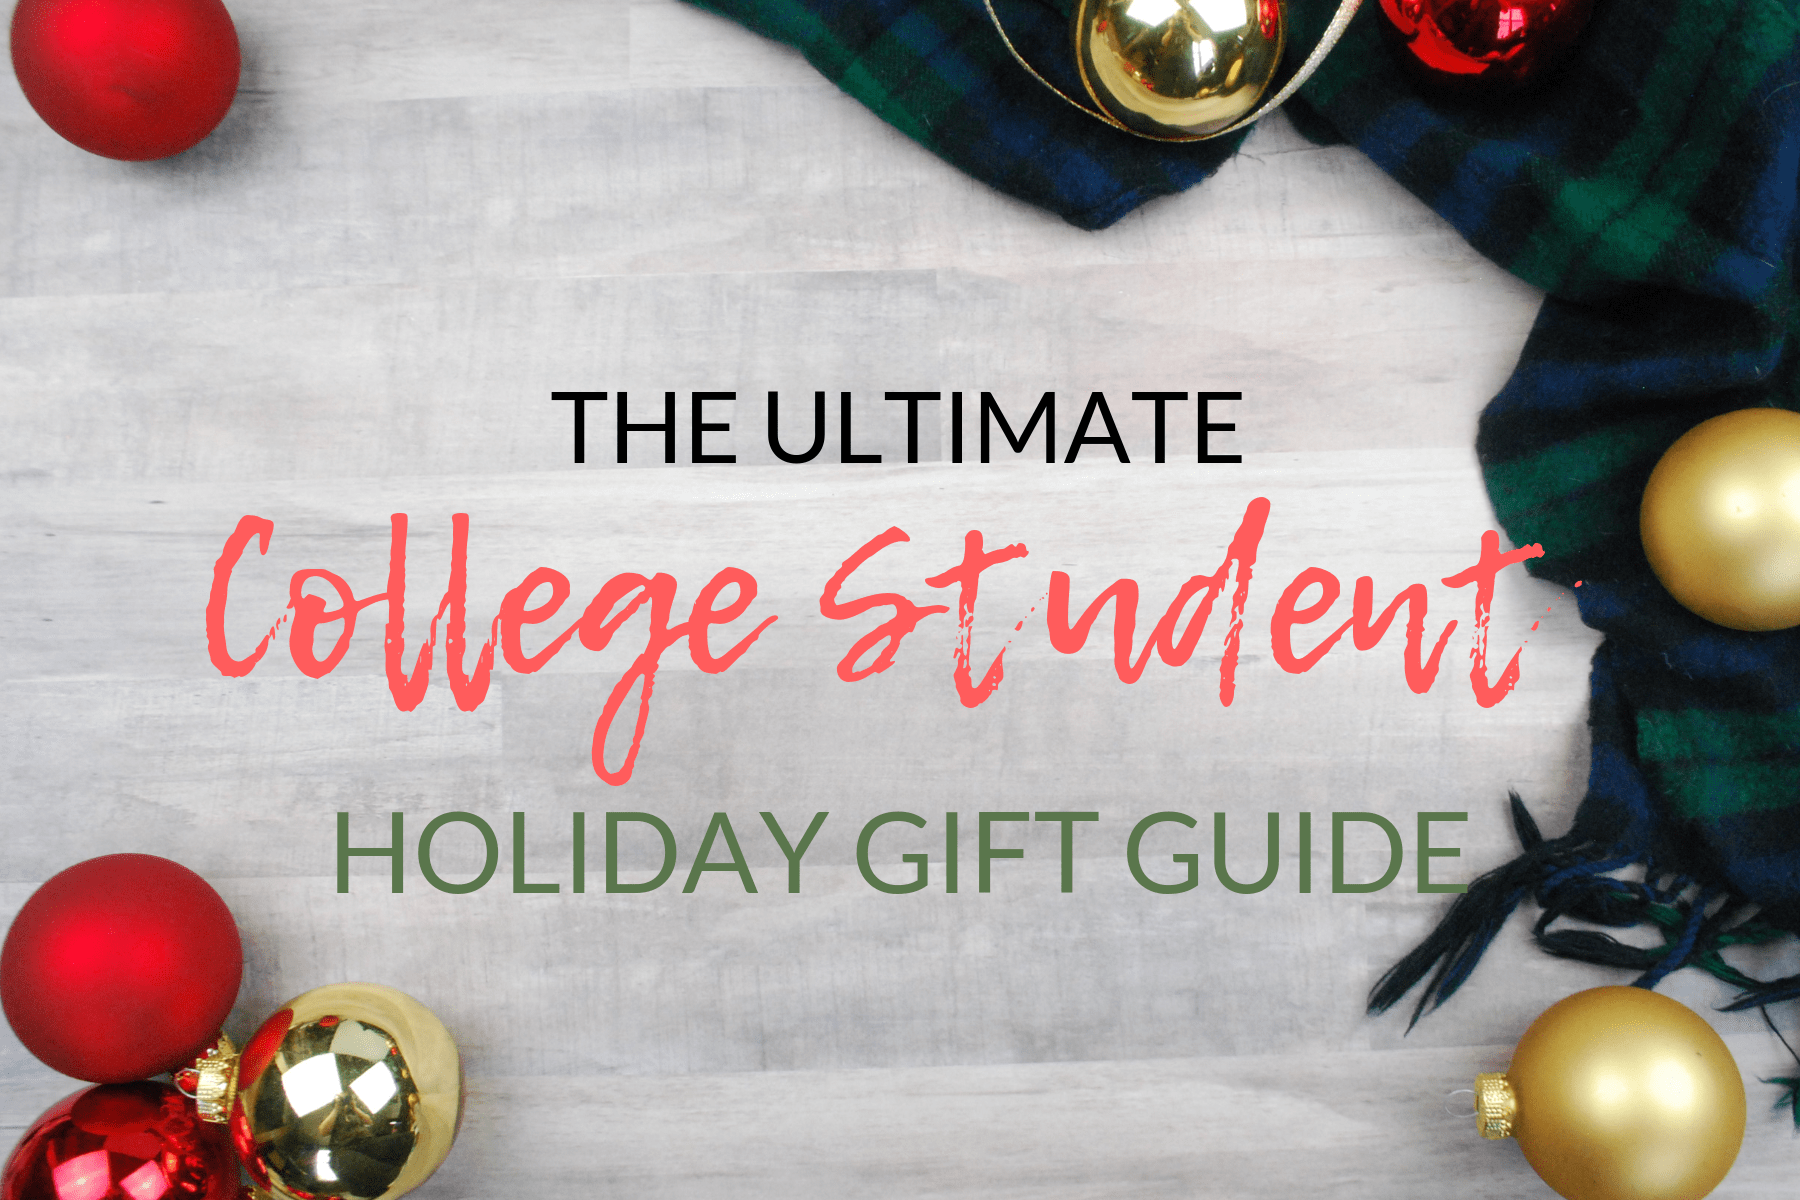 Christmas Gifts For College Students.The Ultimate College Student Holiday Gift Guide The Olden